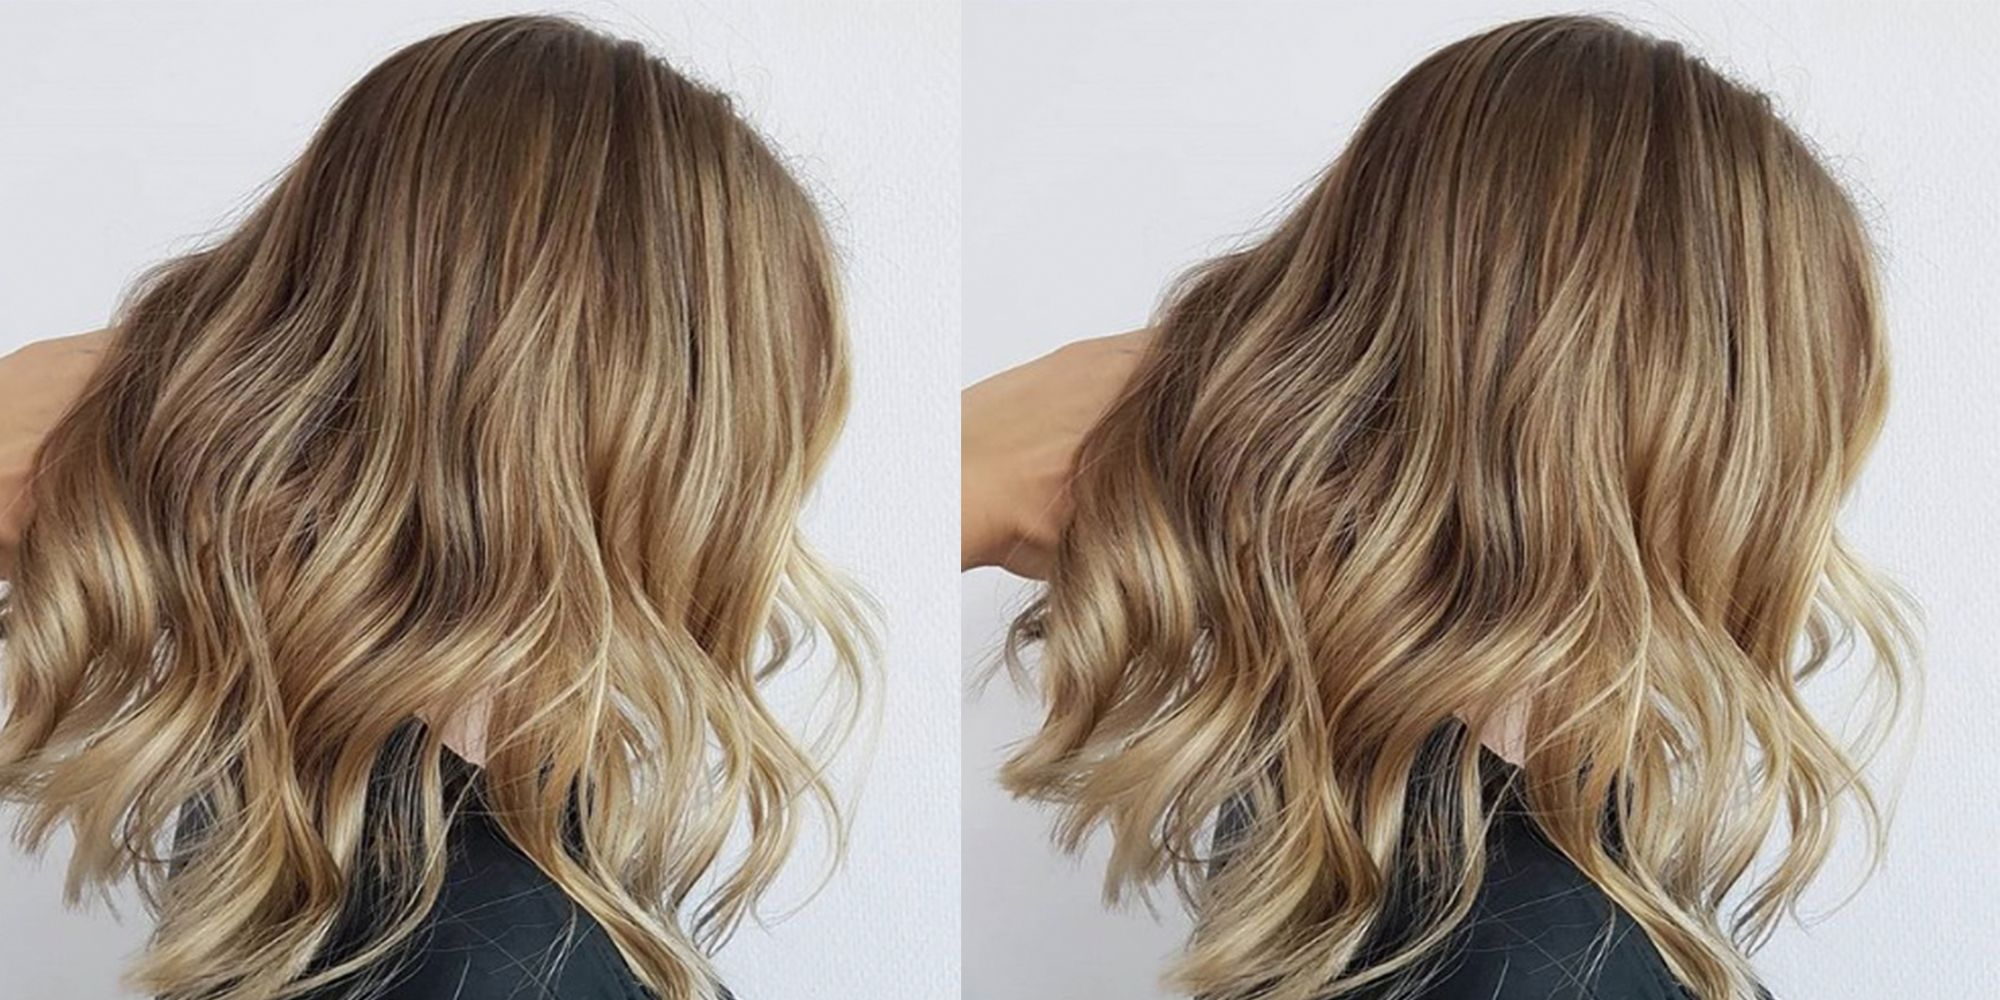 Strandlighting Hair Dye Trend